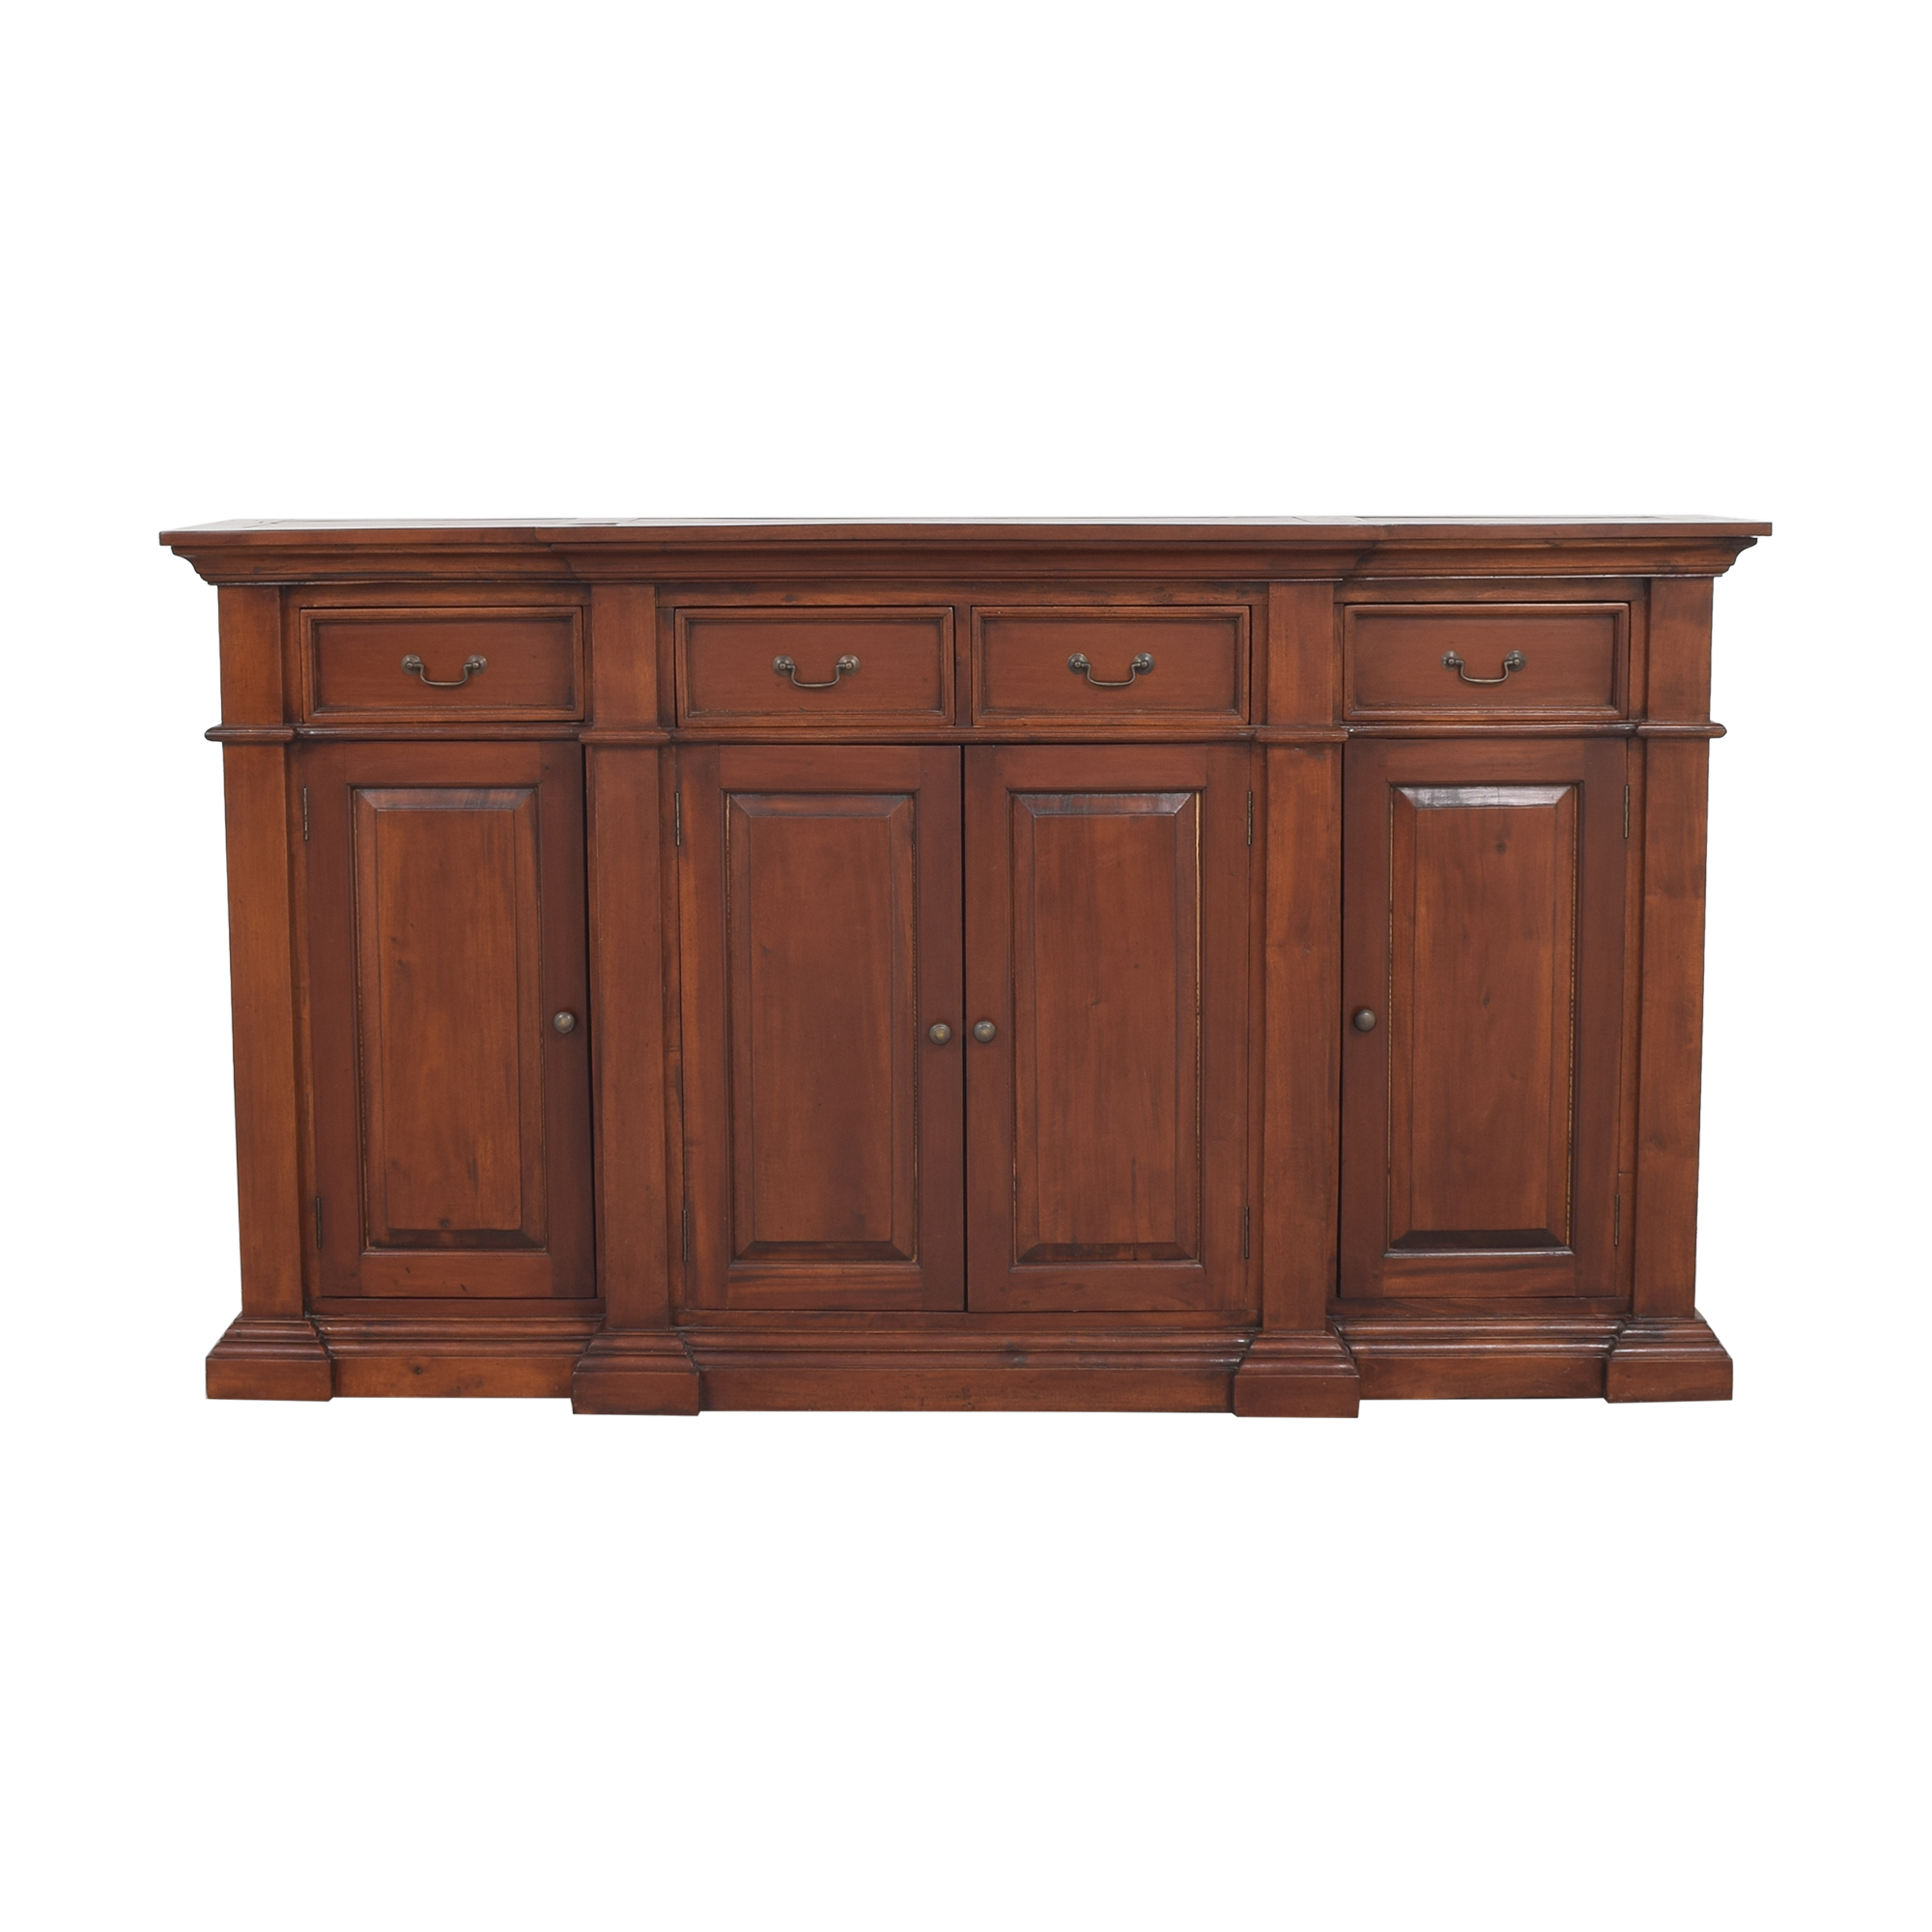 Platypus Platypus Sideboard with Cabinets for sale